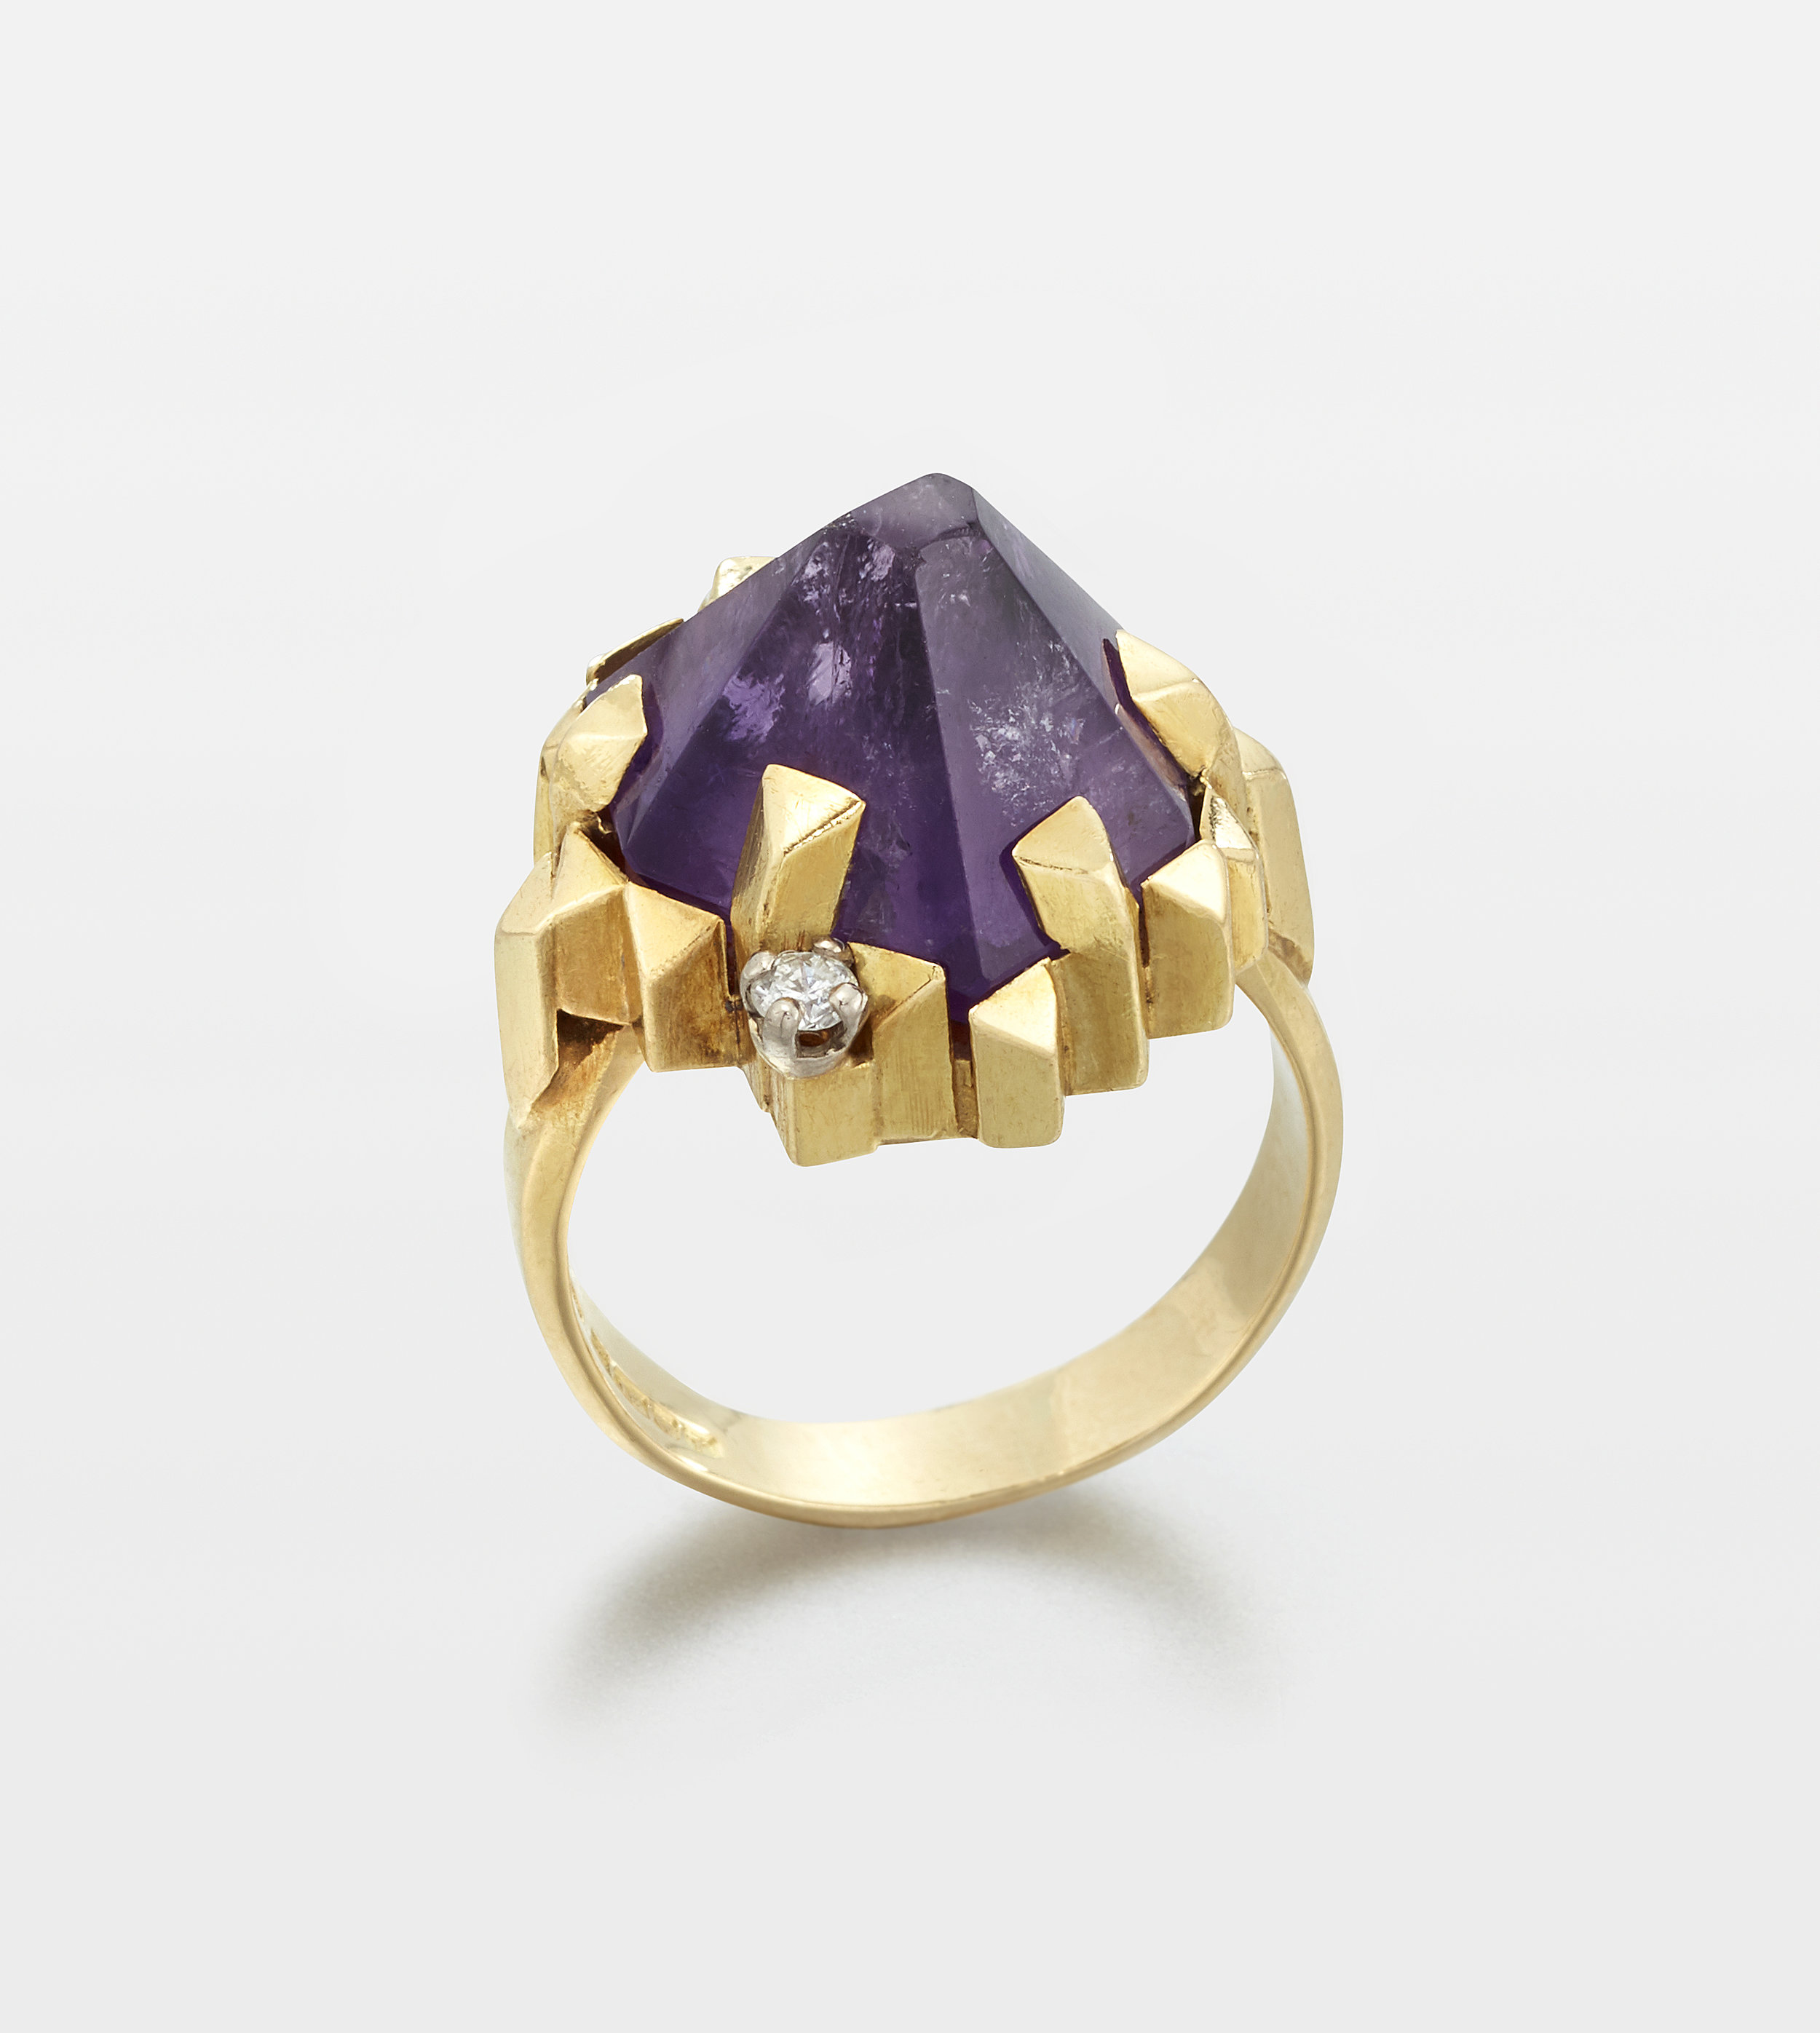 A facetted amethyst, diamond and 18K yellow gold ring, 1973, English - Makers marks T.A.P and C.P.T, maker's marks unknownBirmingham hallmarks